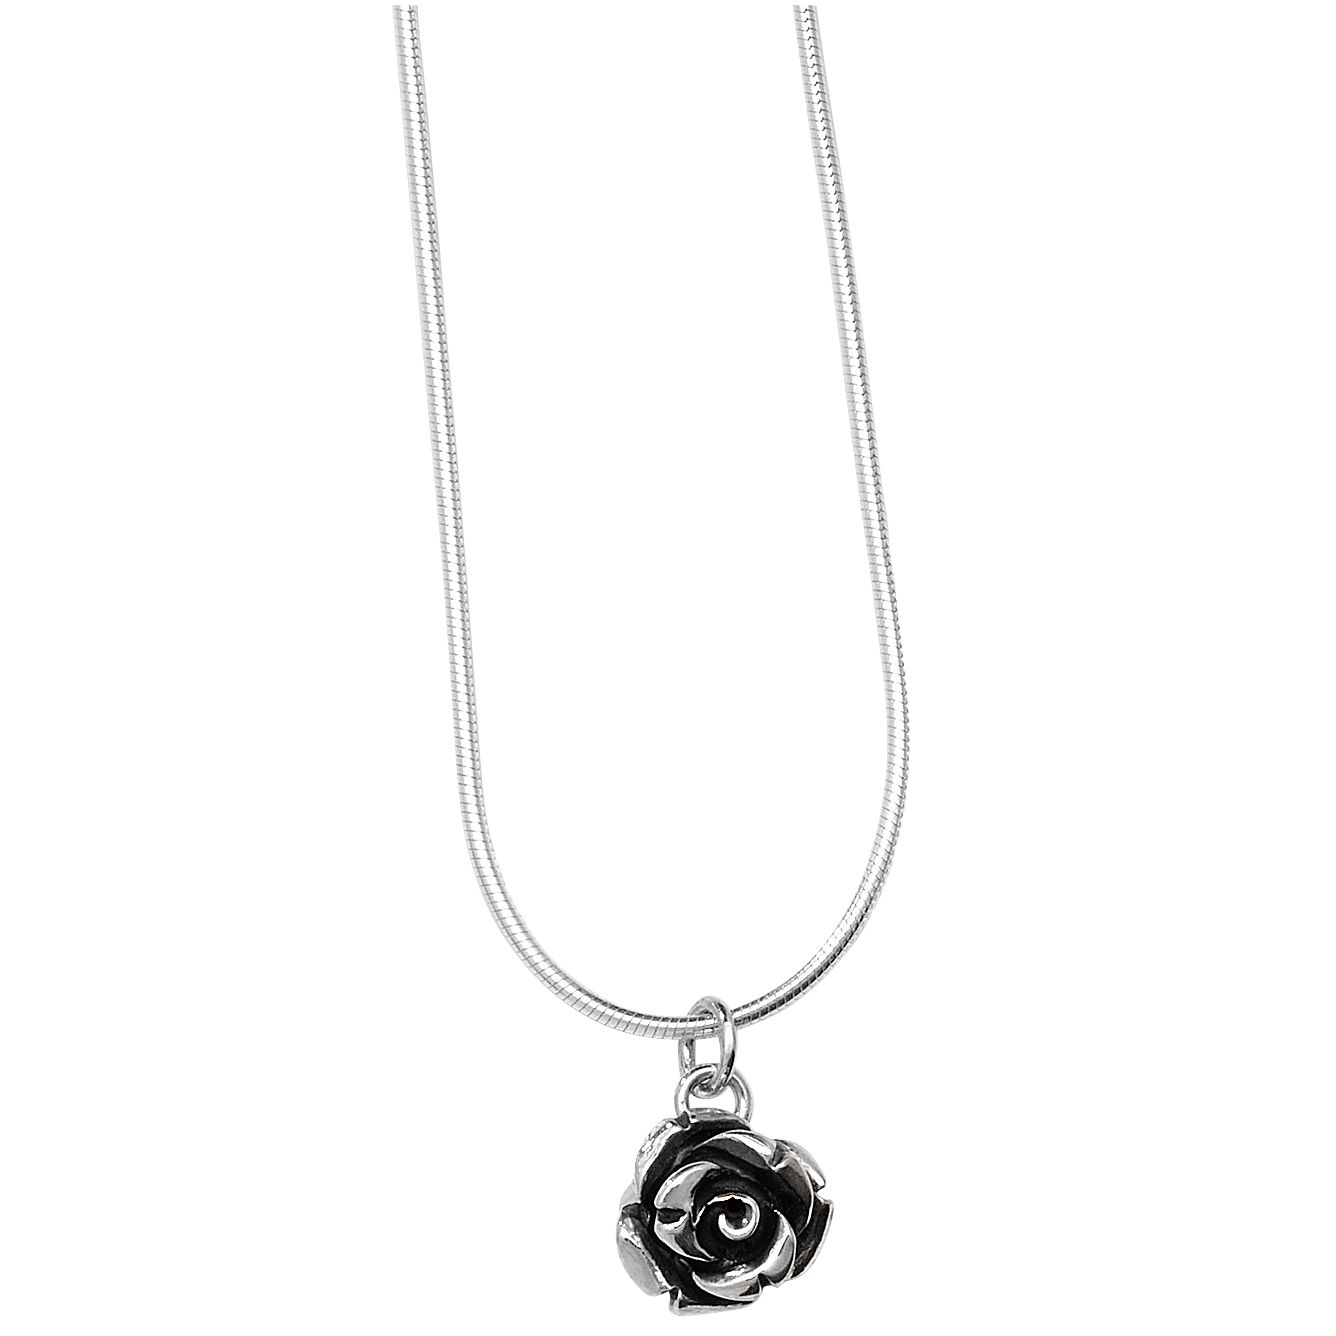 Linda Macdonald Small Silver Rose Pendant Necklace